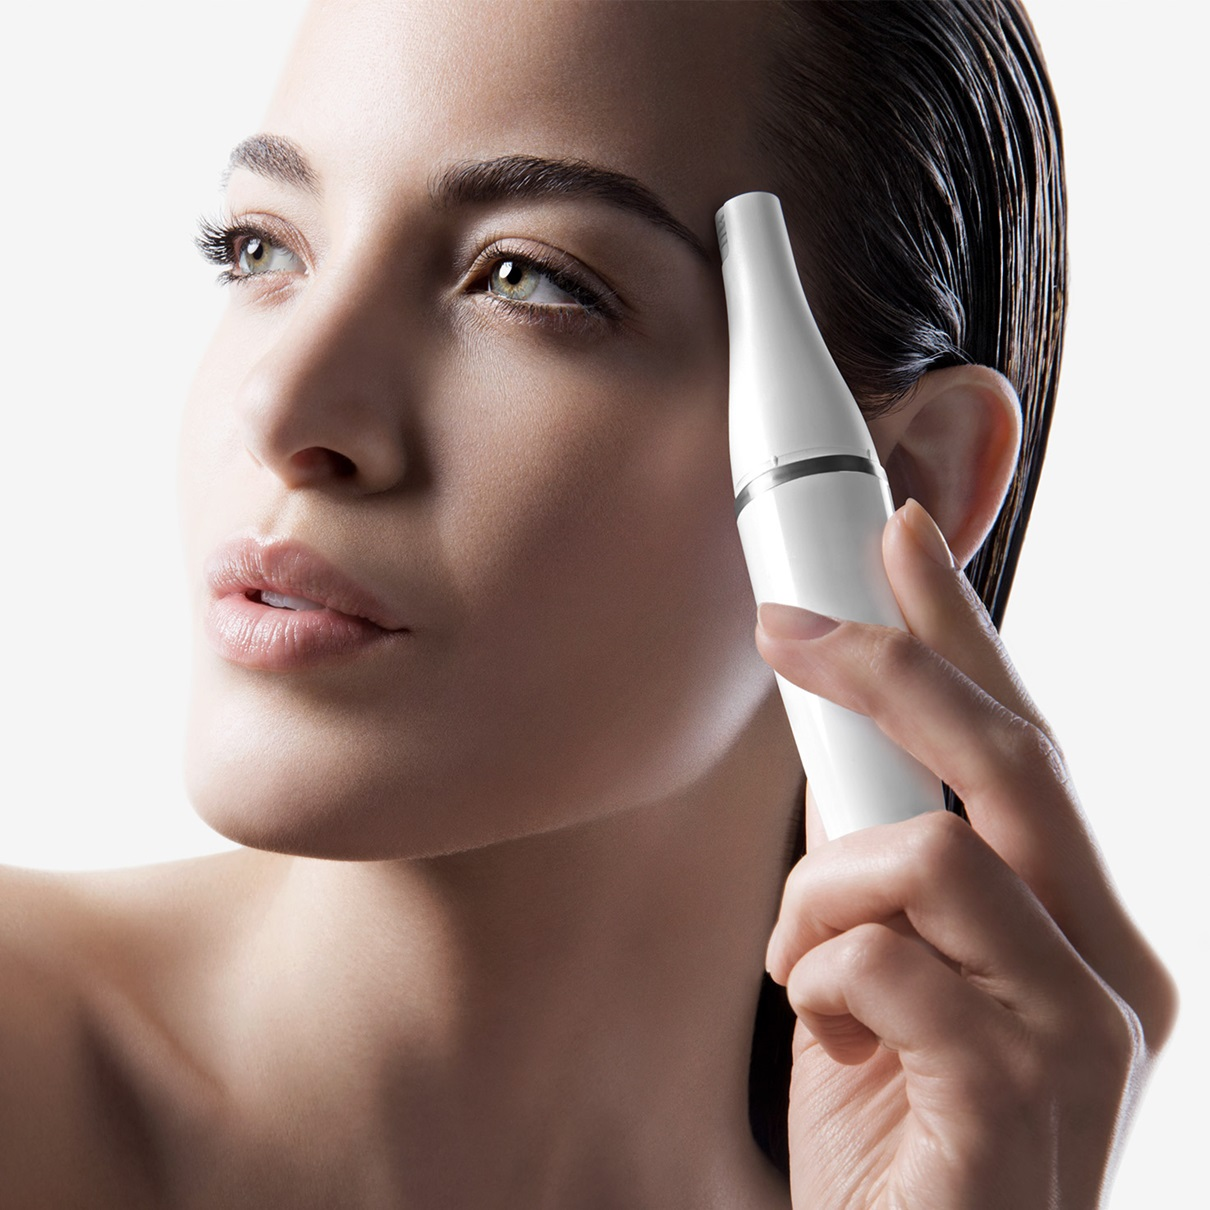 Braun Face 820 - facial epilator - in use